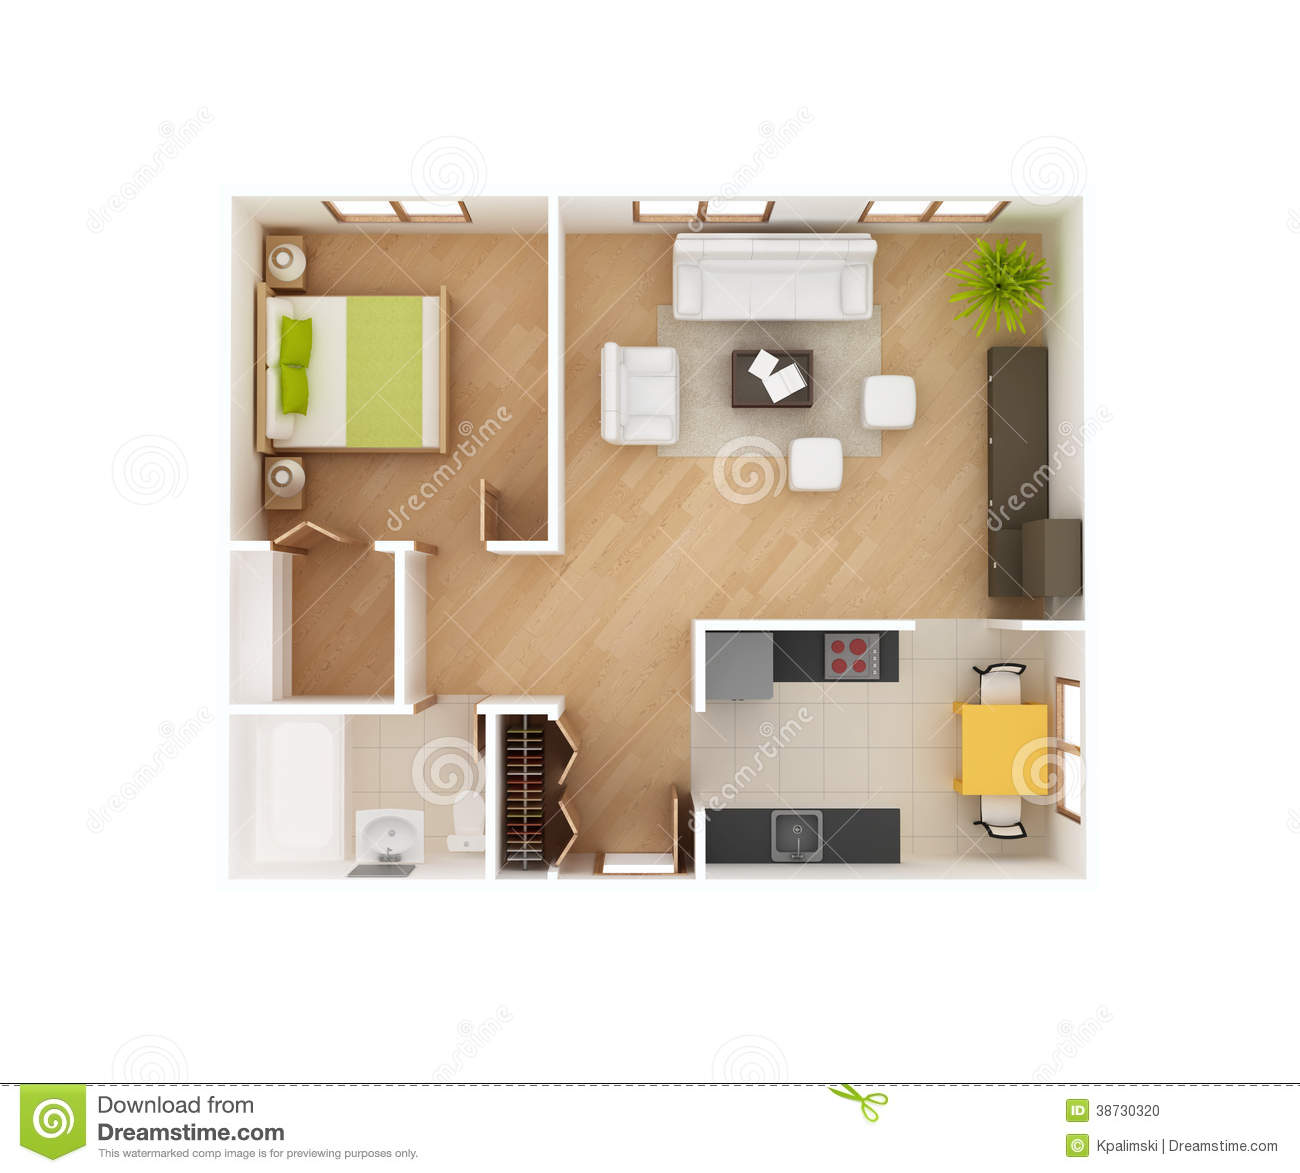 basic 3d house floor plan top view stock illustration illustration of kitchen project 38730320 - 3d House Floor Plans Free